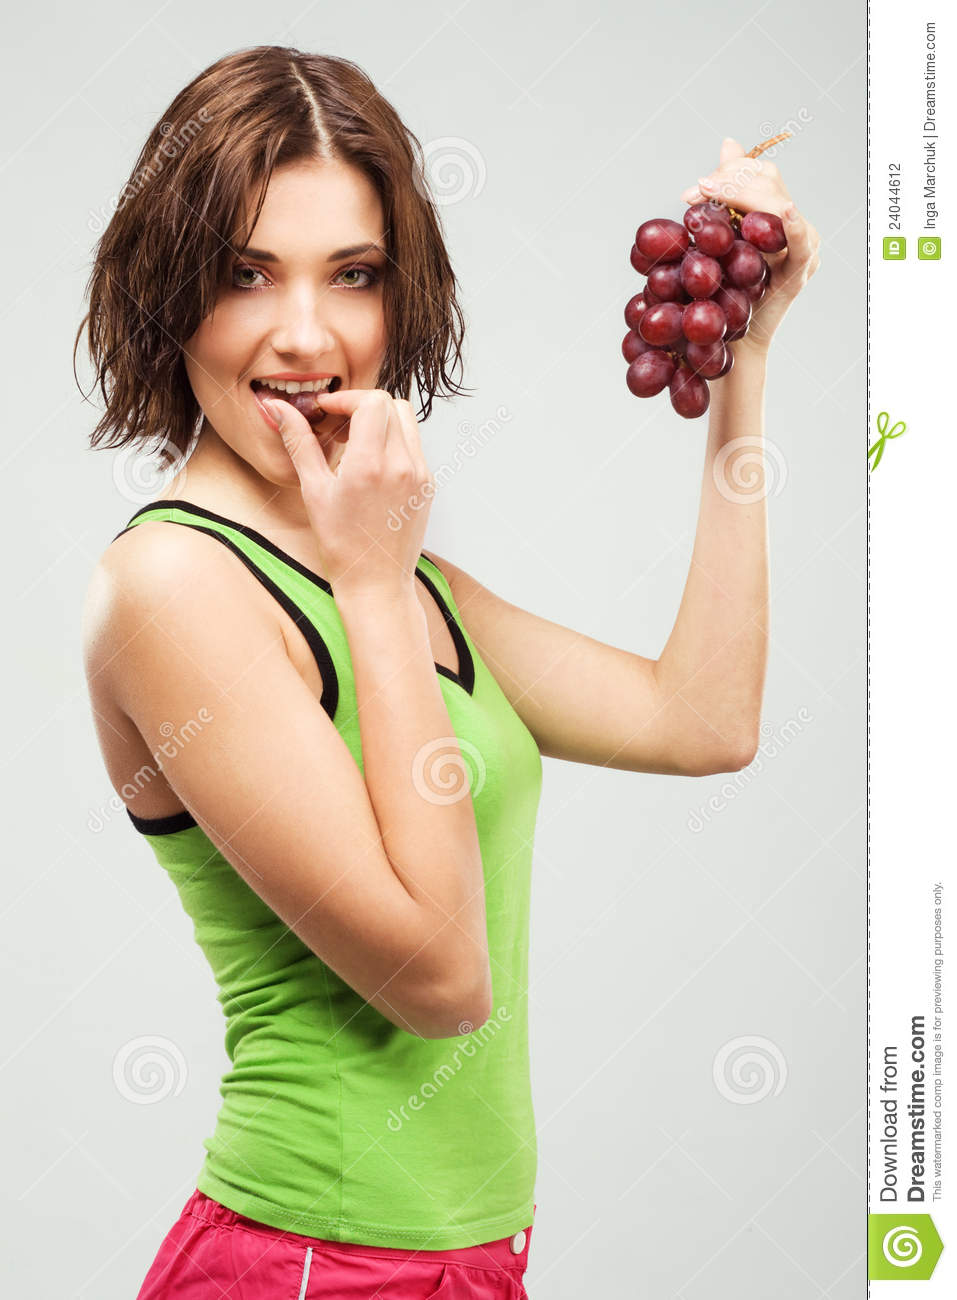 Beautiful Sporty Woman Eating Grapes Stock Photography.